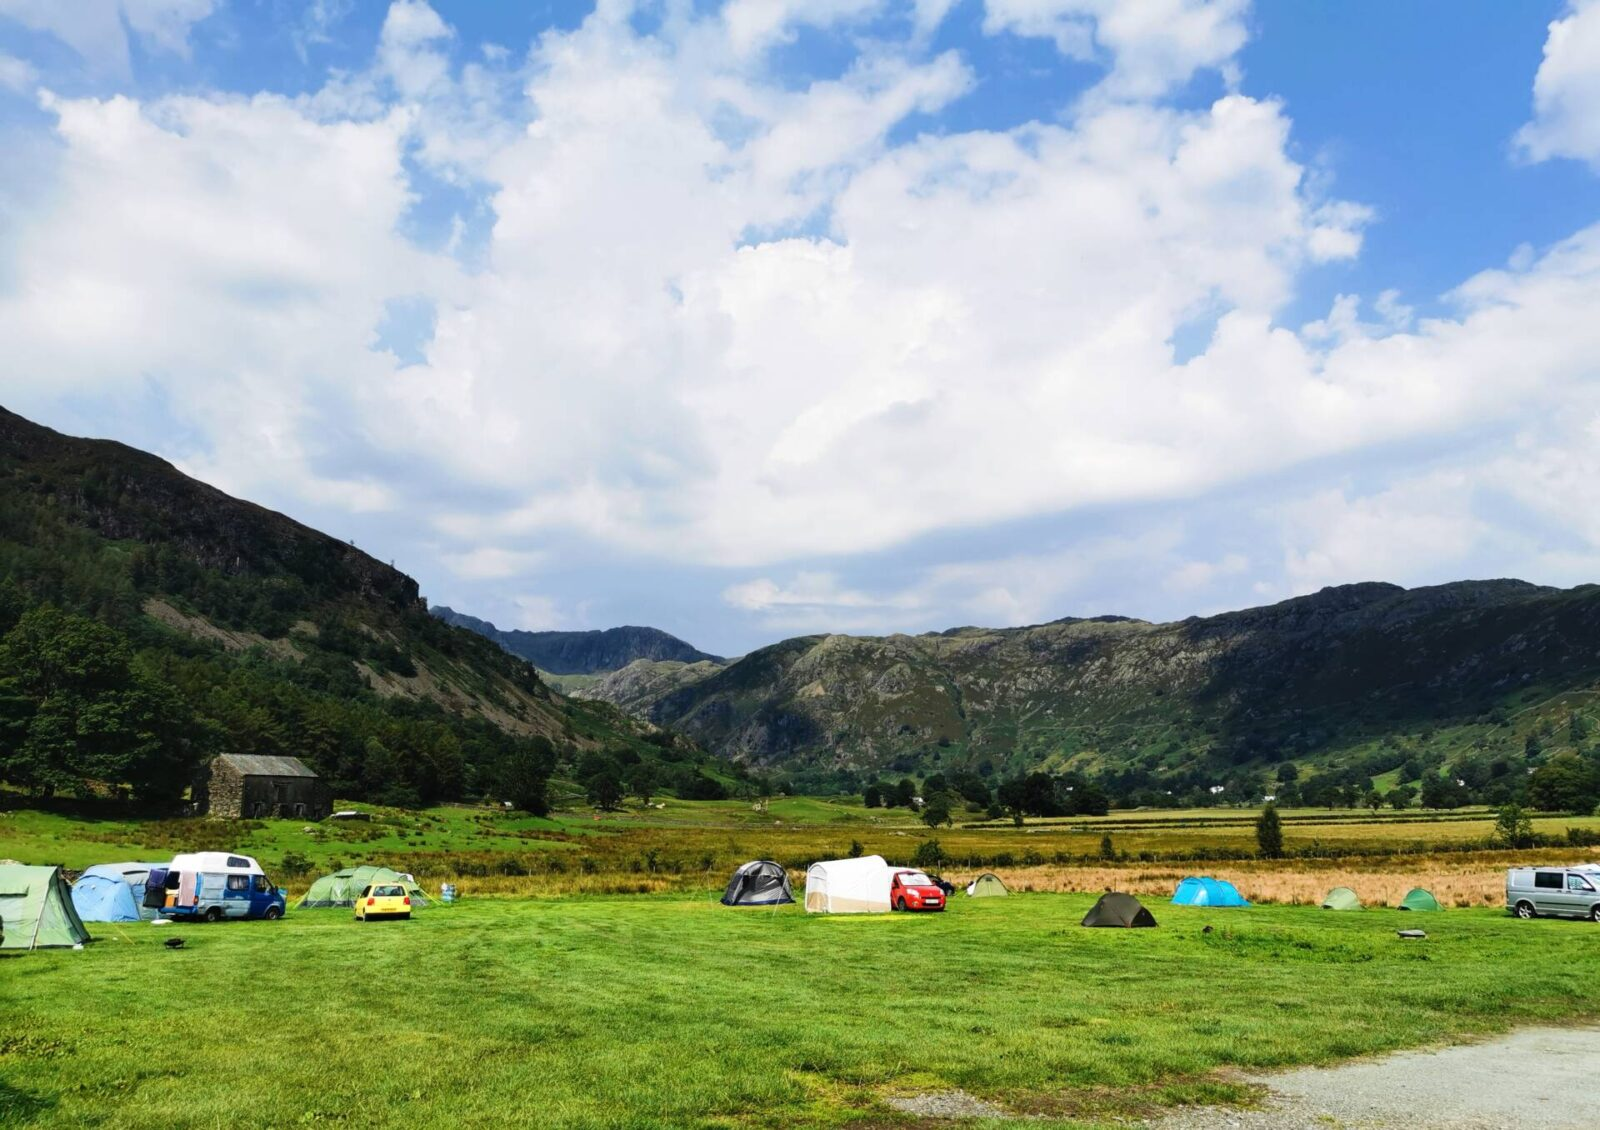 Baysbrown Farm Campsite in Great Langdale, Lake District